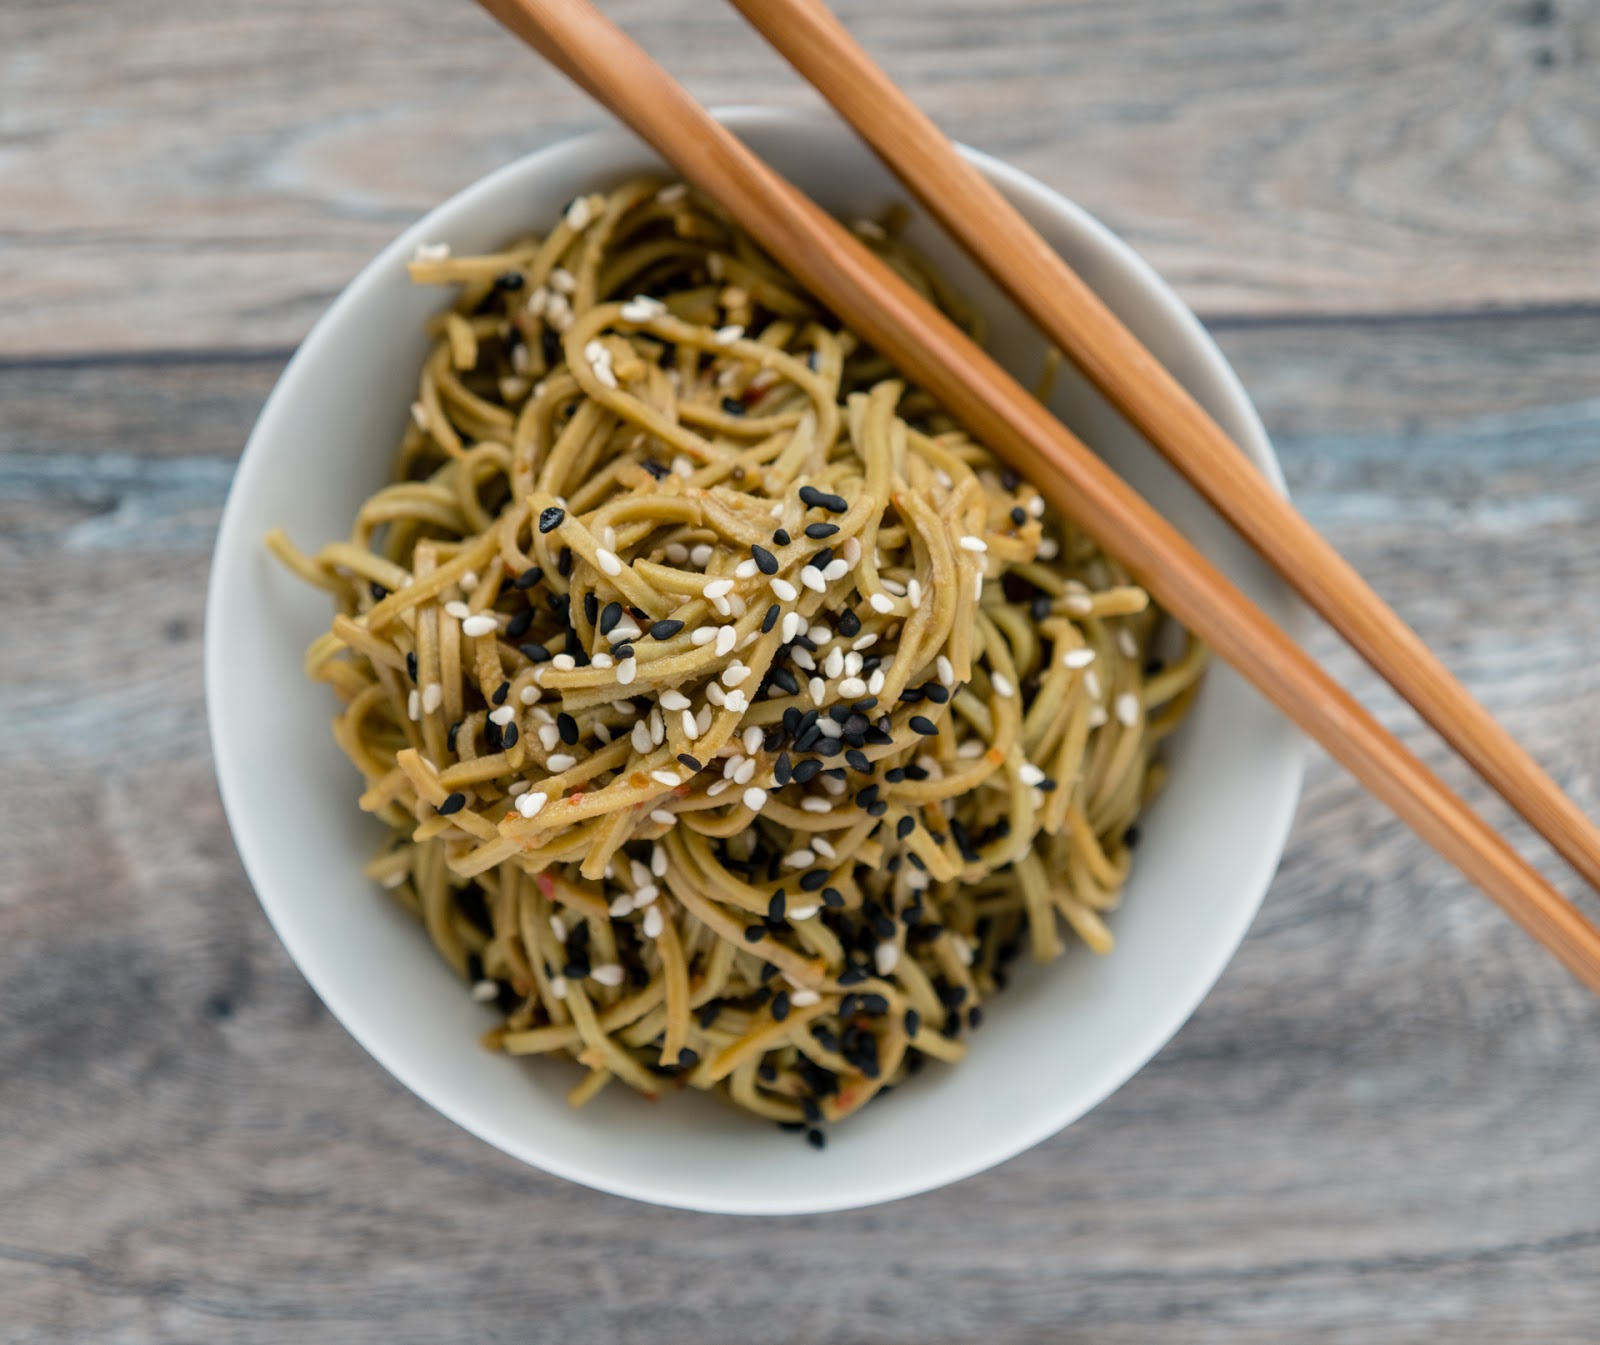 This quick and simple vegetarian sesame ginger edamame spaghetti recipe is packed with protein, low in carbs, and full of flavor. | Local Food Rocks